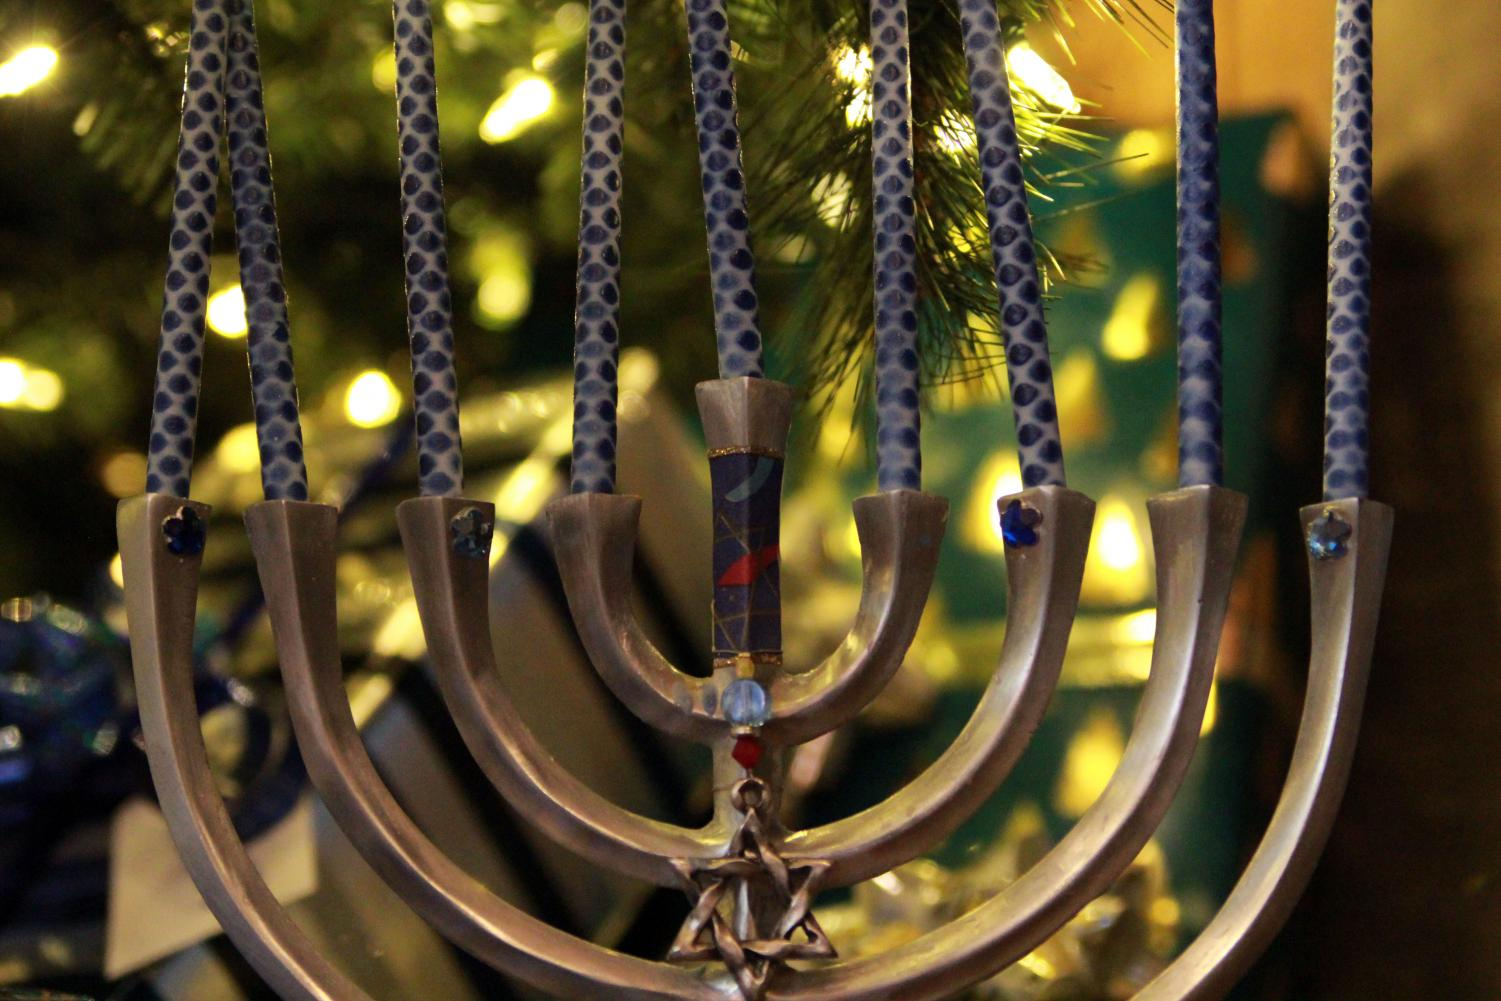 Hanukkah starts Sunday Dec. 22 and ends Monday Dec. 30, with Christmas on the fourth day of Hanukkah, Wednesday Dec. 25.